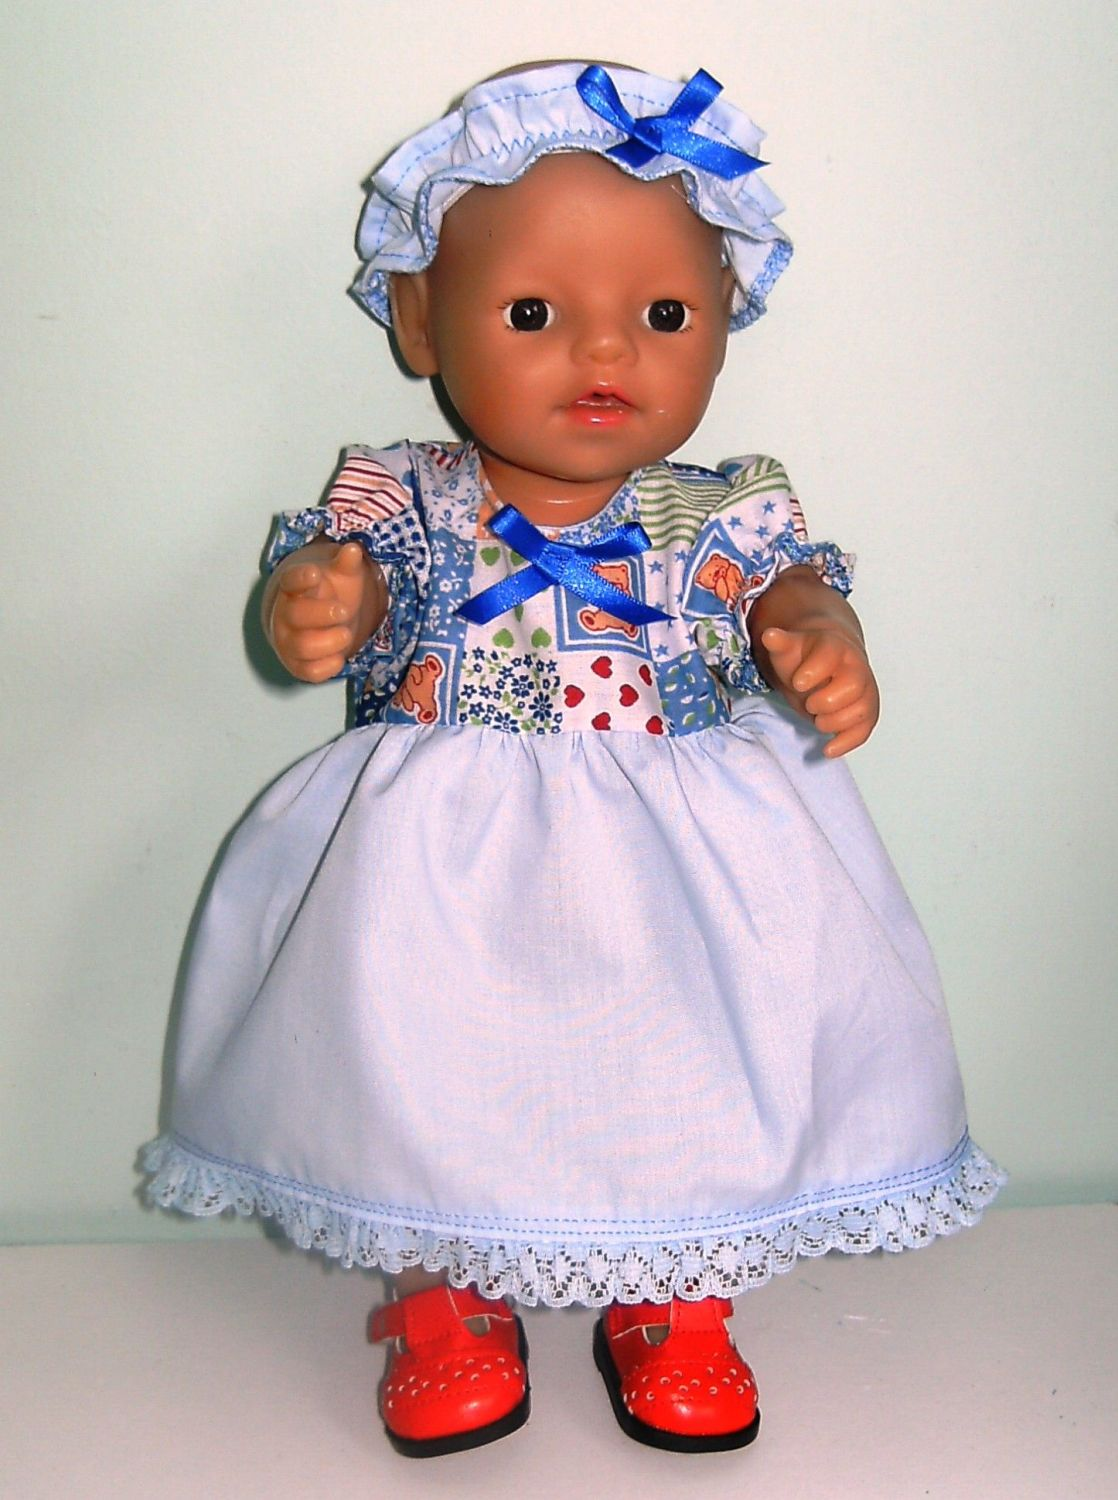 Doll's Dress and Alice band made to fit a 12 inch high baby doll